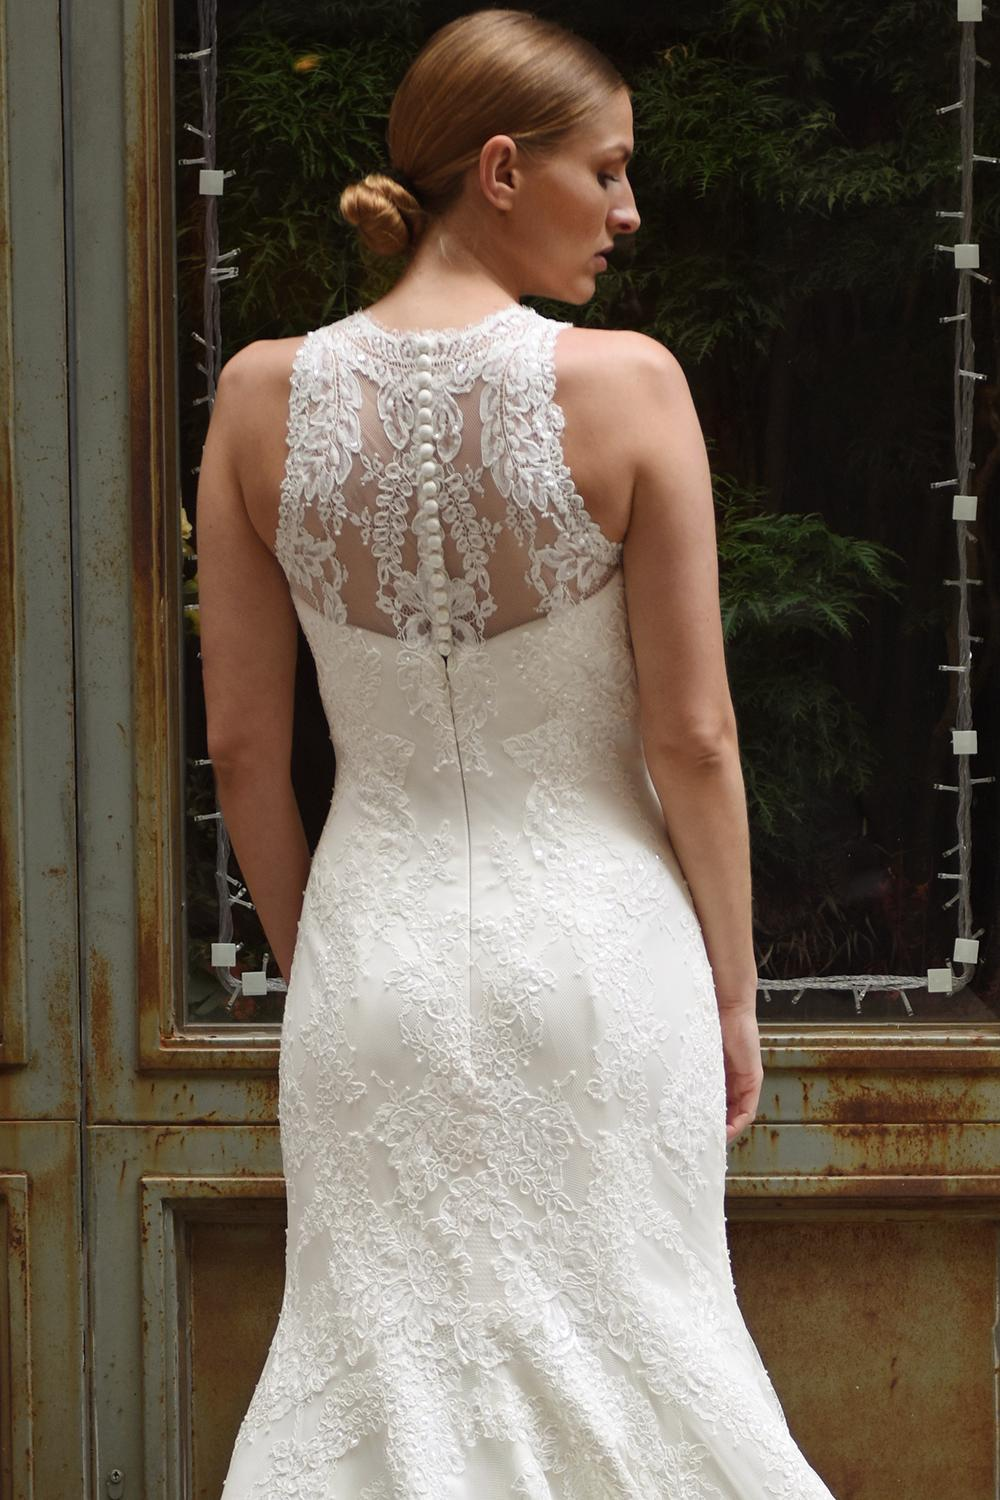 ed482b567a6 High Illusion Sweetheart Neck Lace Fit And Flare Wedding Dress ...